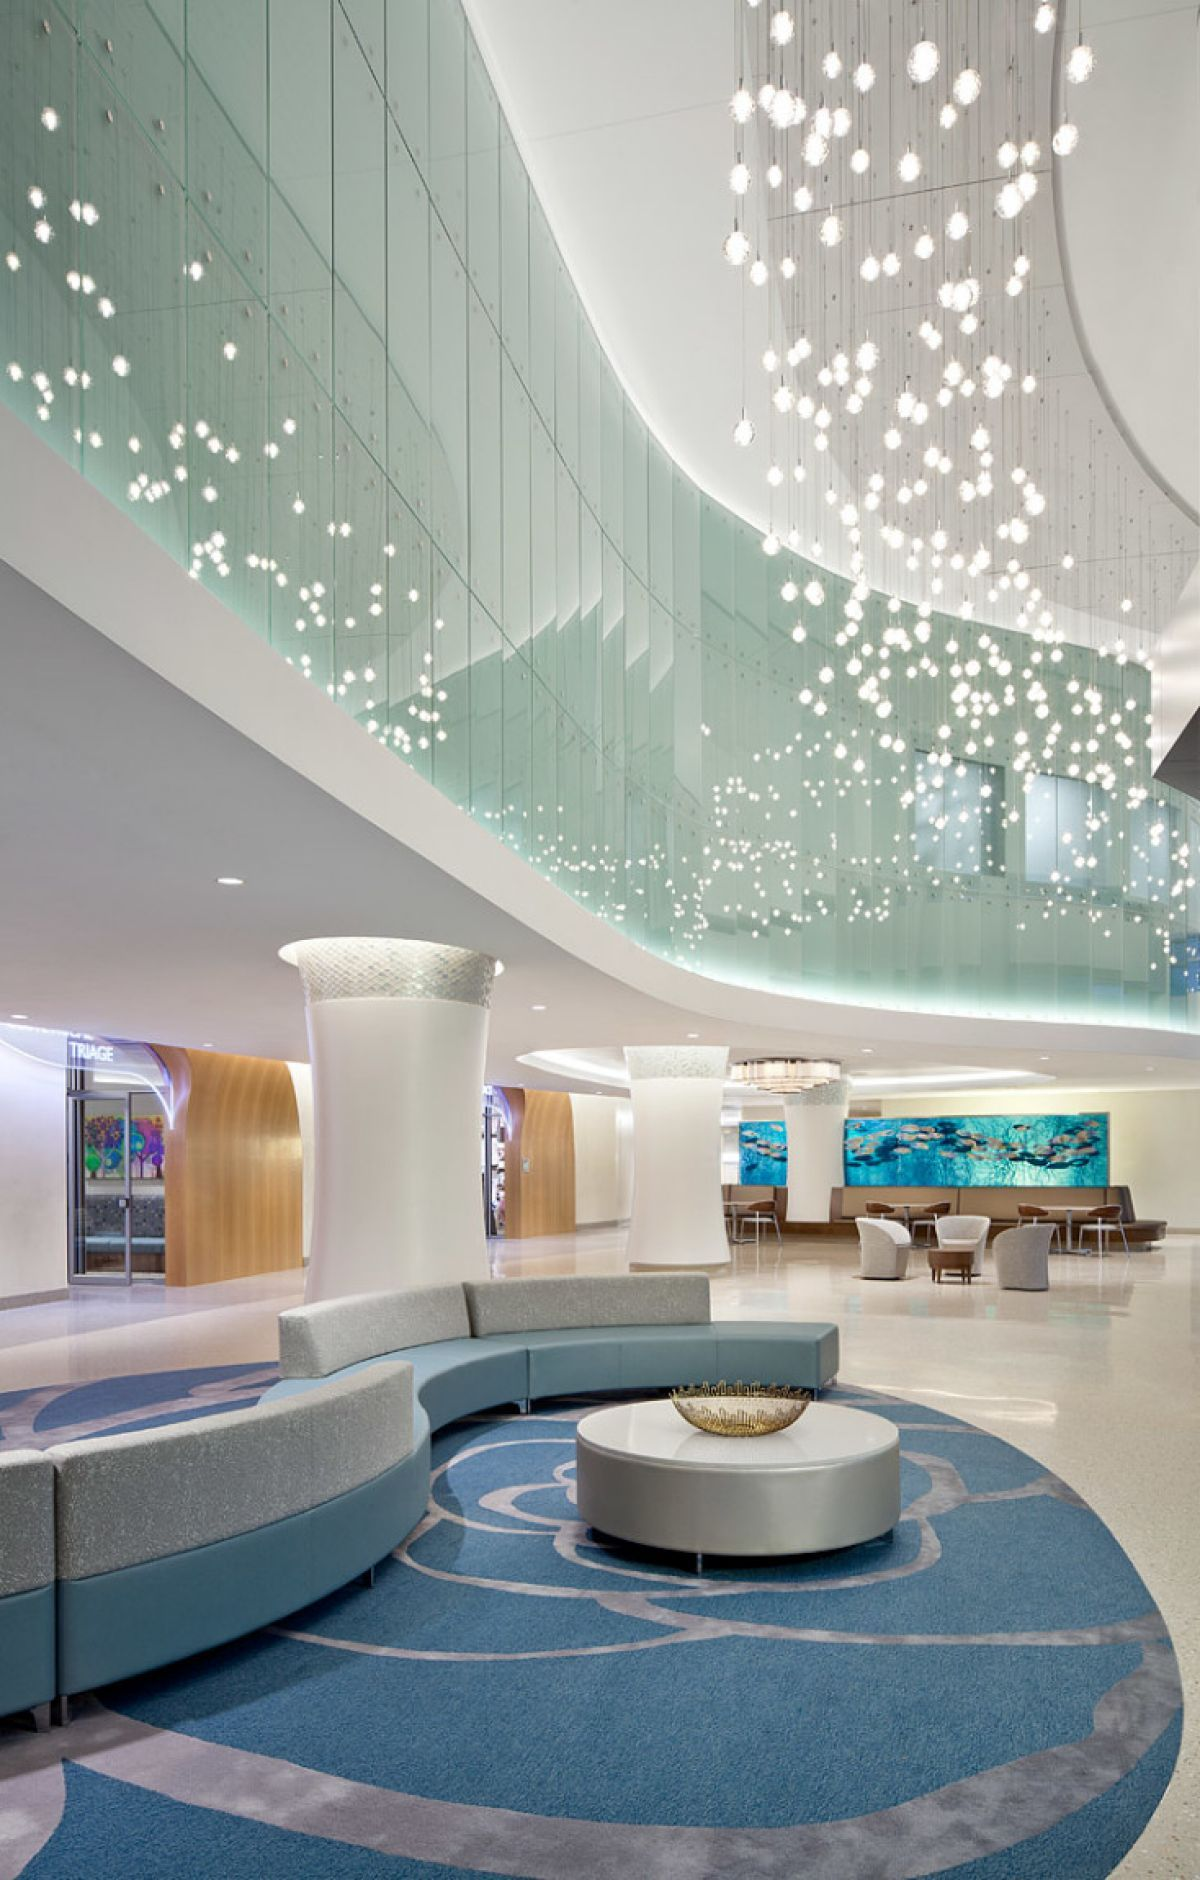 The international interior design association iida named stantec inc as the best of competition winner of the 2016 healthcare interior design